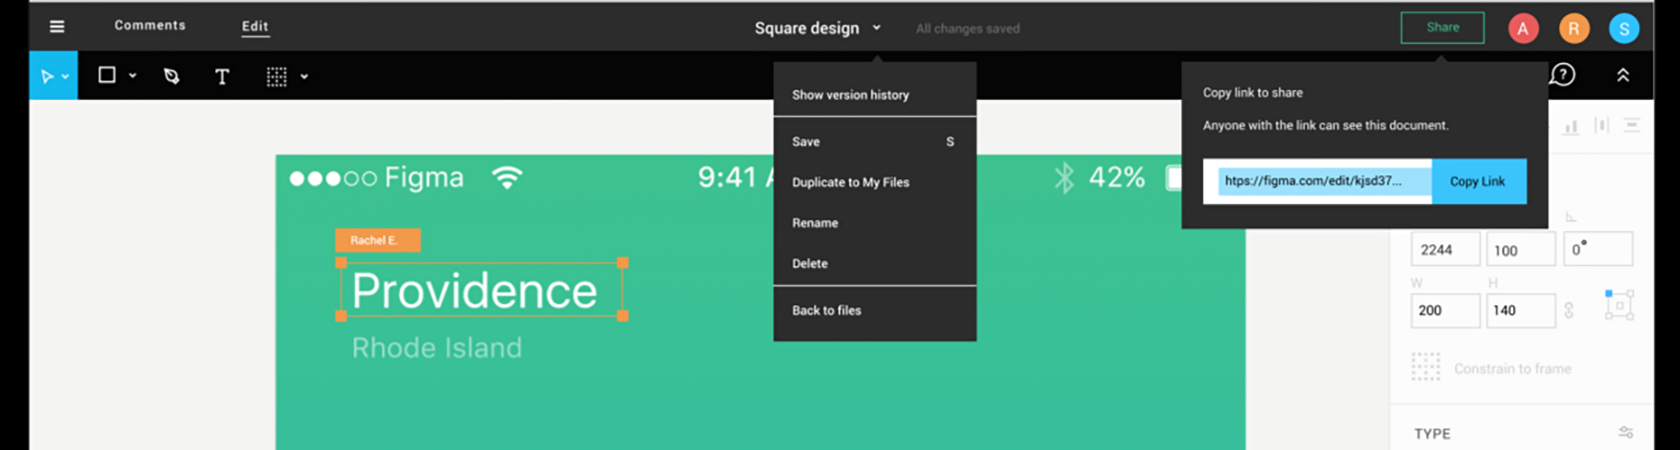 Design news Figma 3.0 release